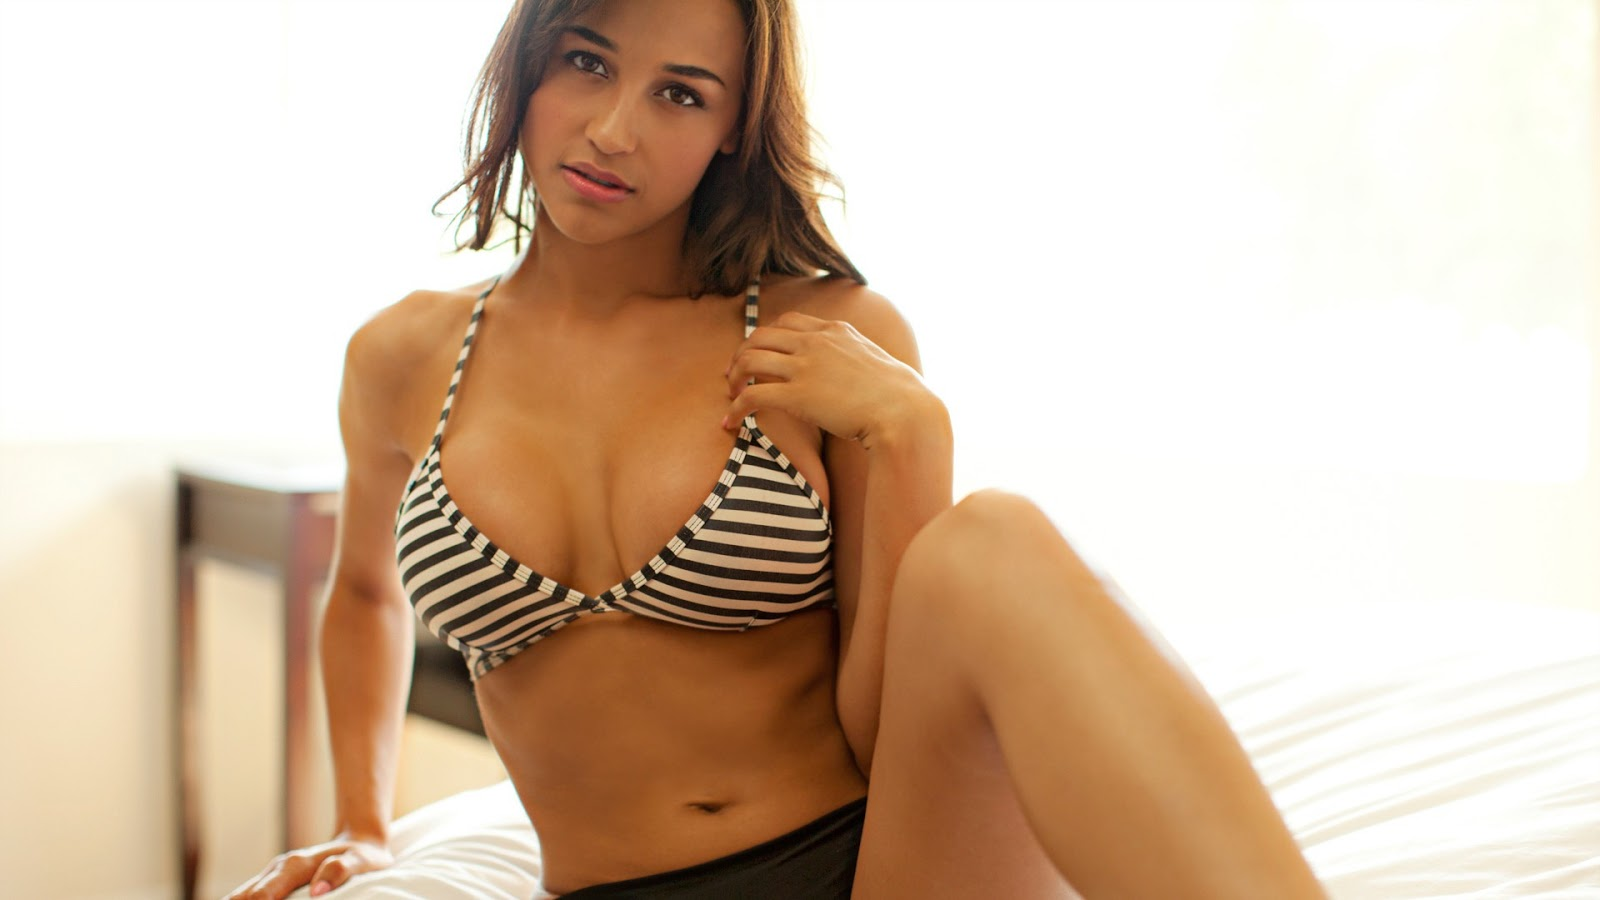 Ana cheri video join